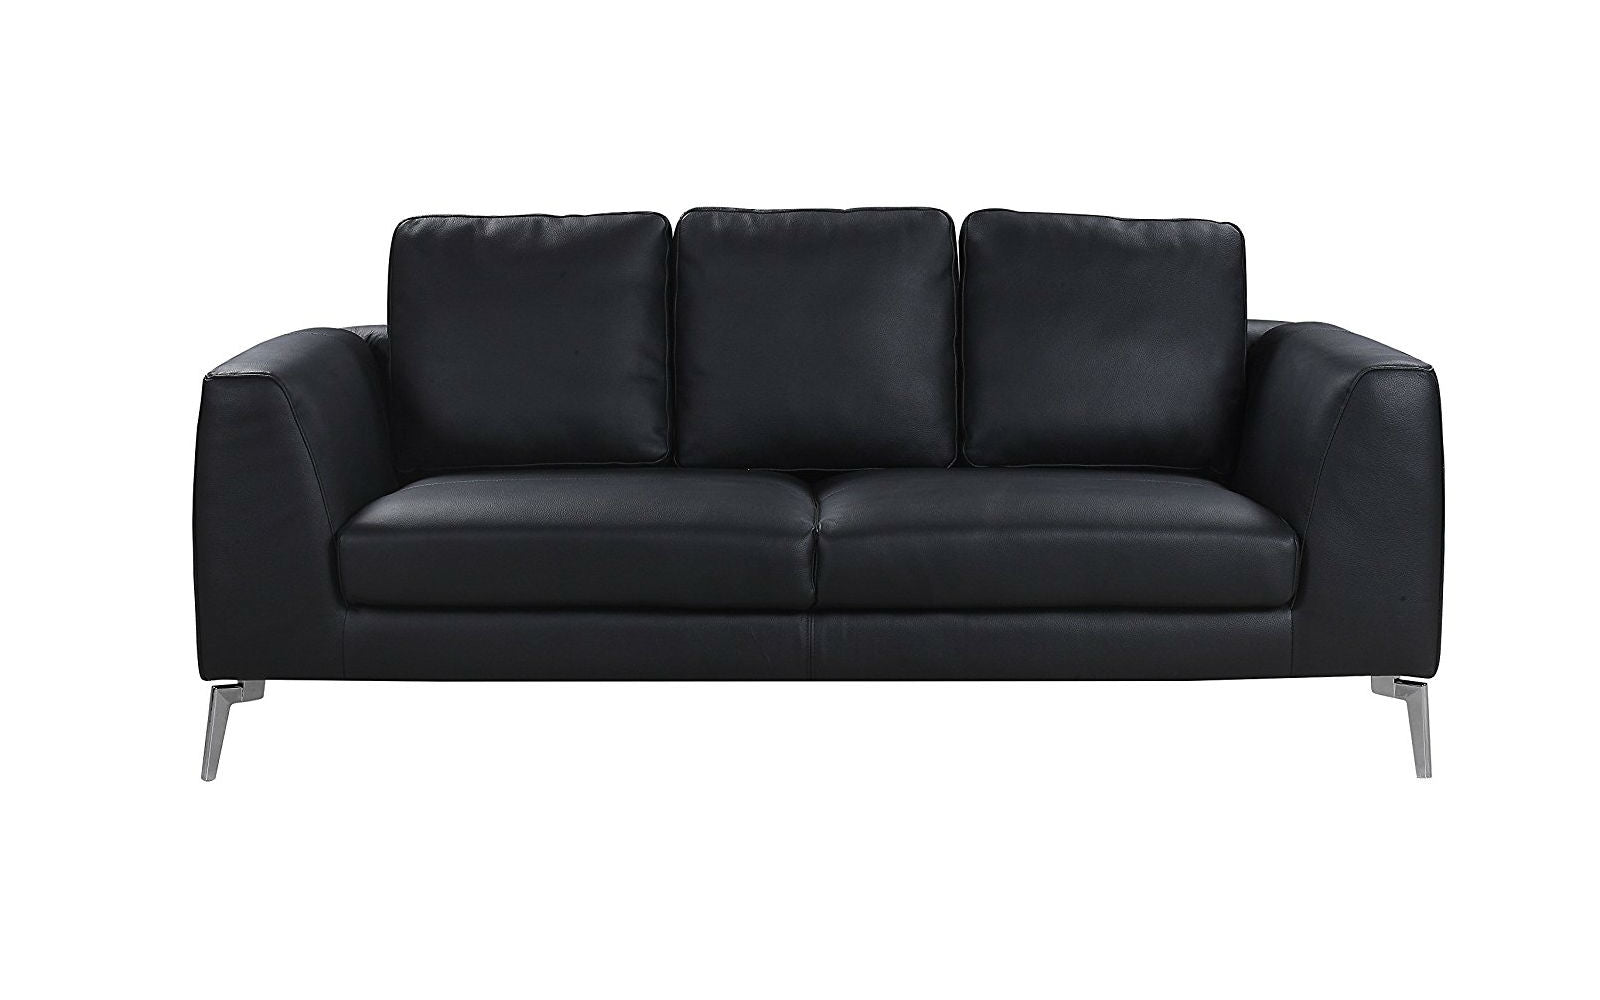 Genial ... Santiago Mid Century Modern Plush Leather Sofa In Black ...